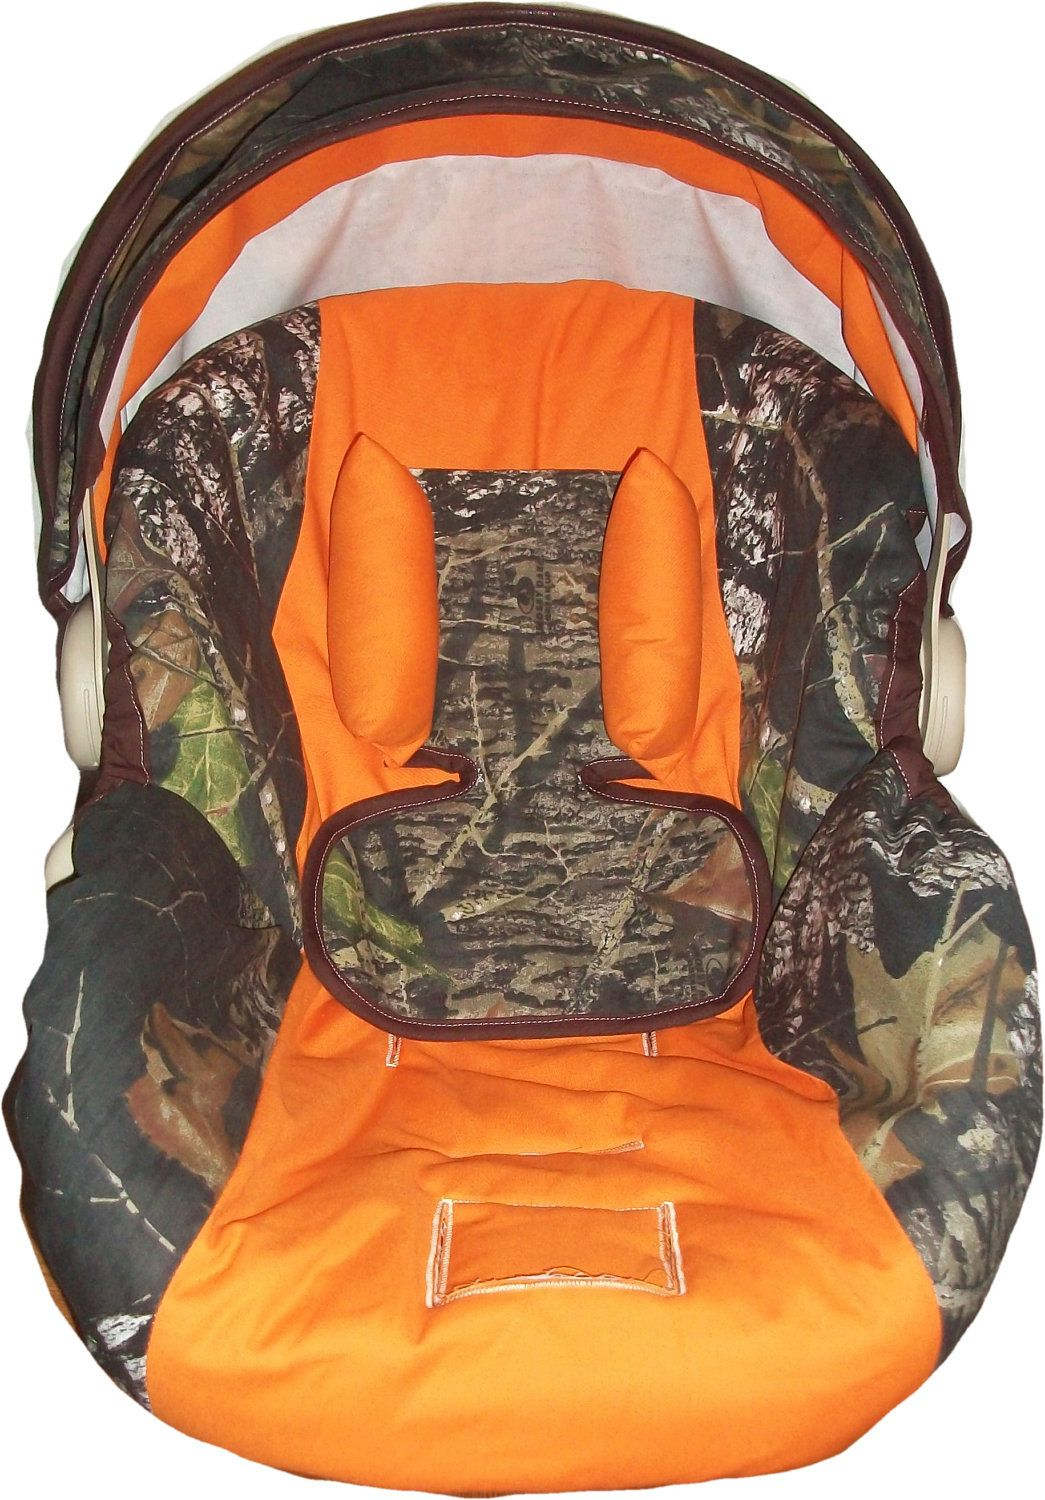 Mossy Oak Camo And Orange Infant Car Seat Cover Most Model 8500 Via Etsy